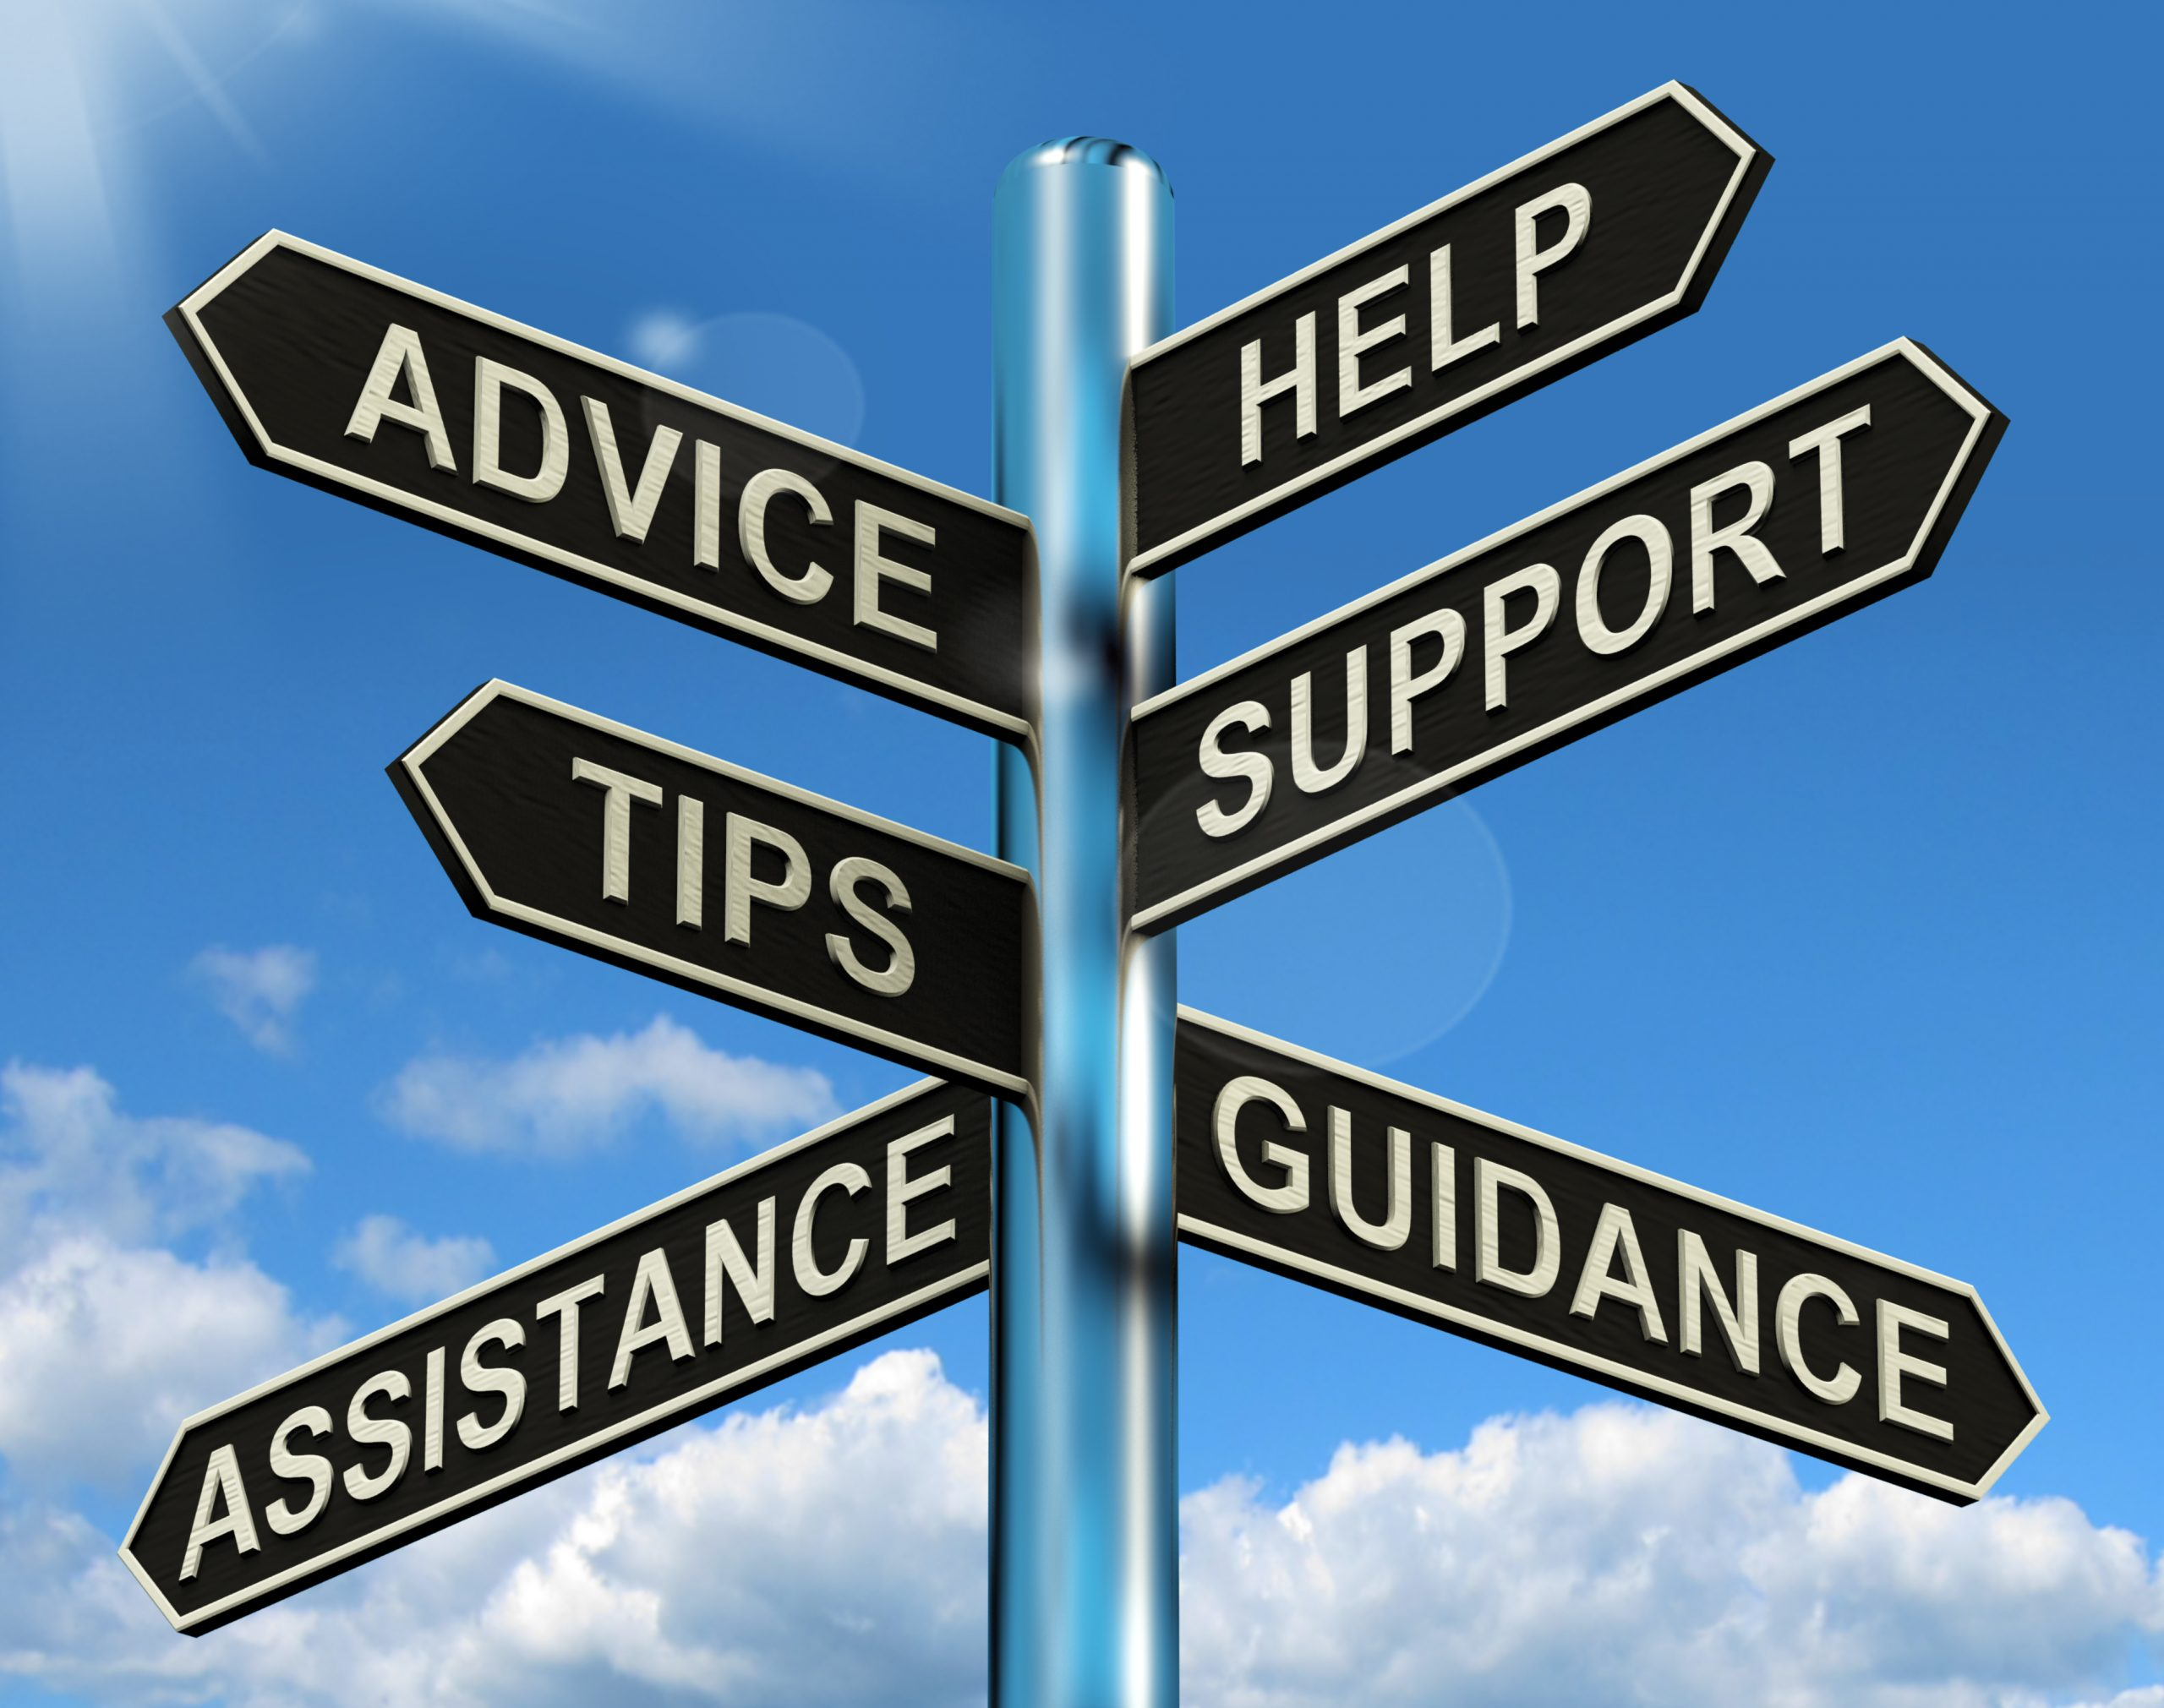 Sacramento Help Support And Tips Signpost Showing Information And Guidance